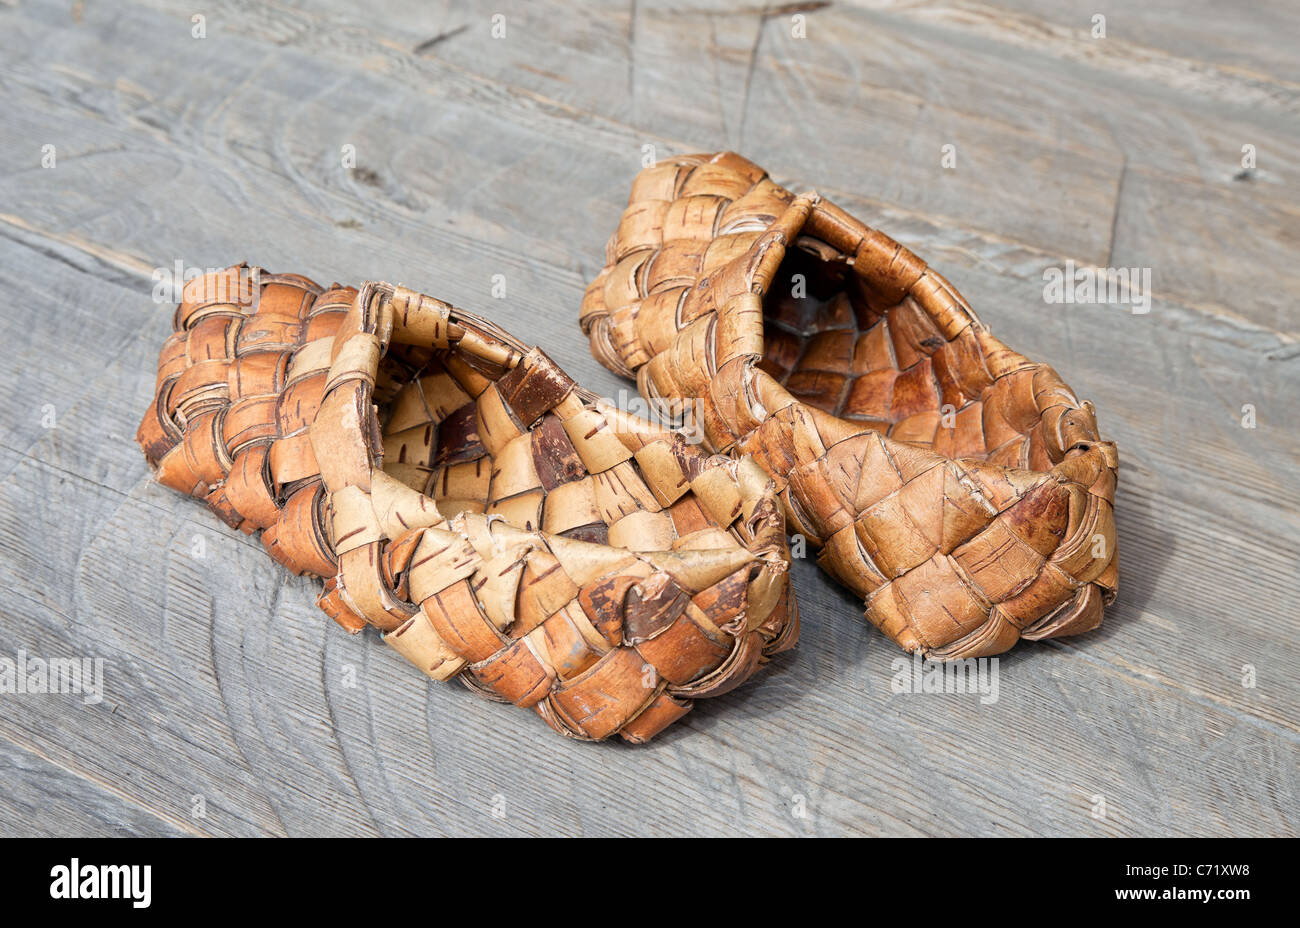 Rural still life. Russian traditional bast shoes on background of boards. - Stock Image